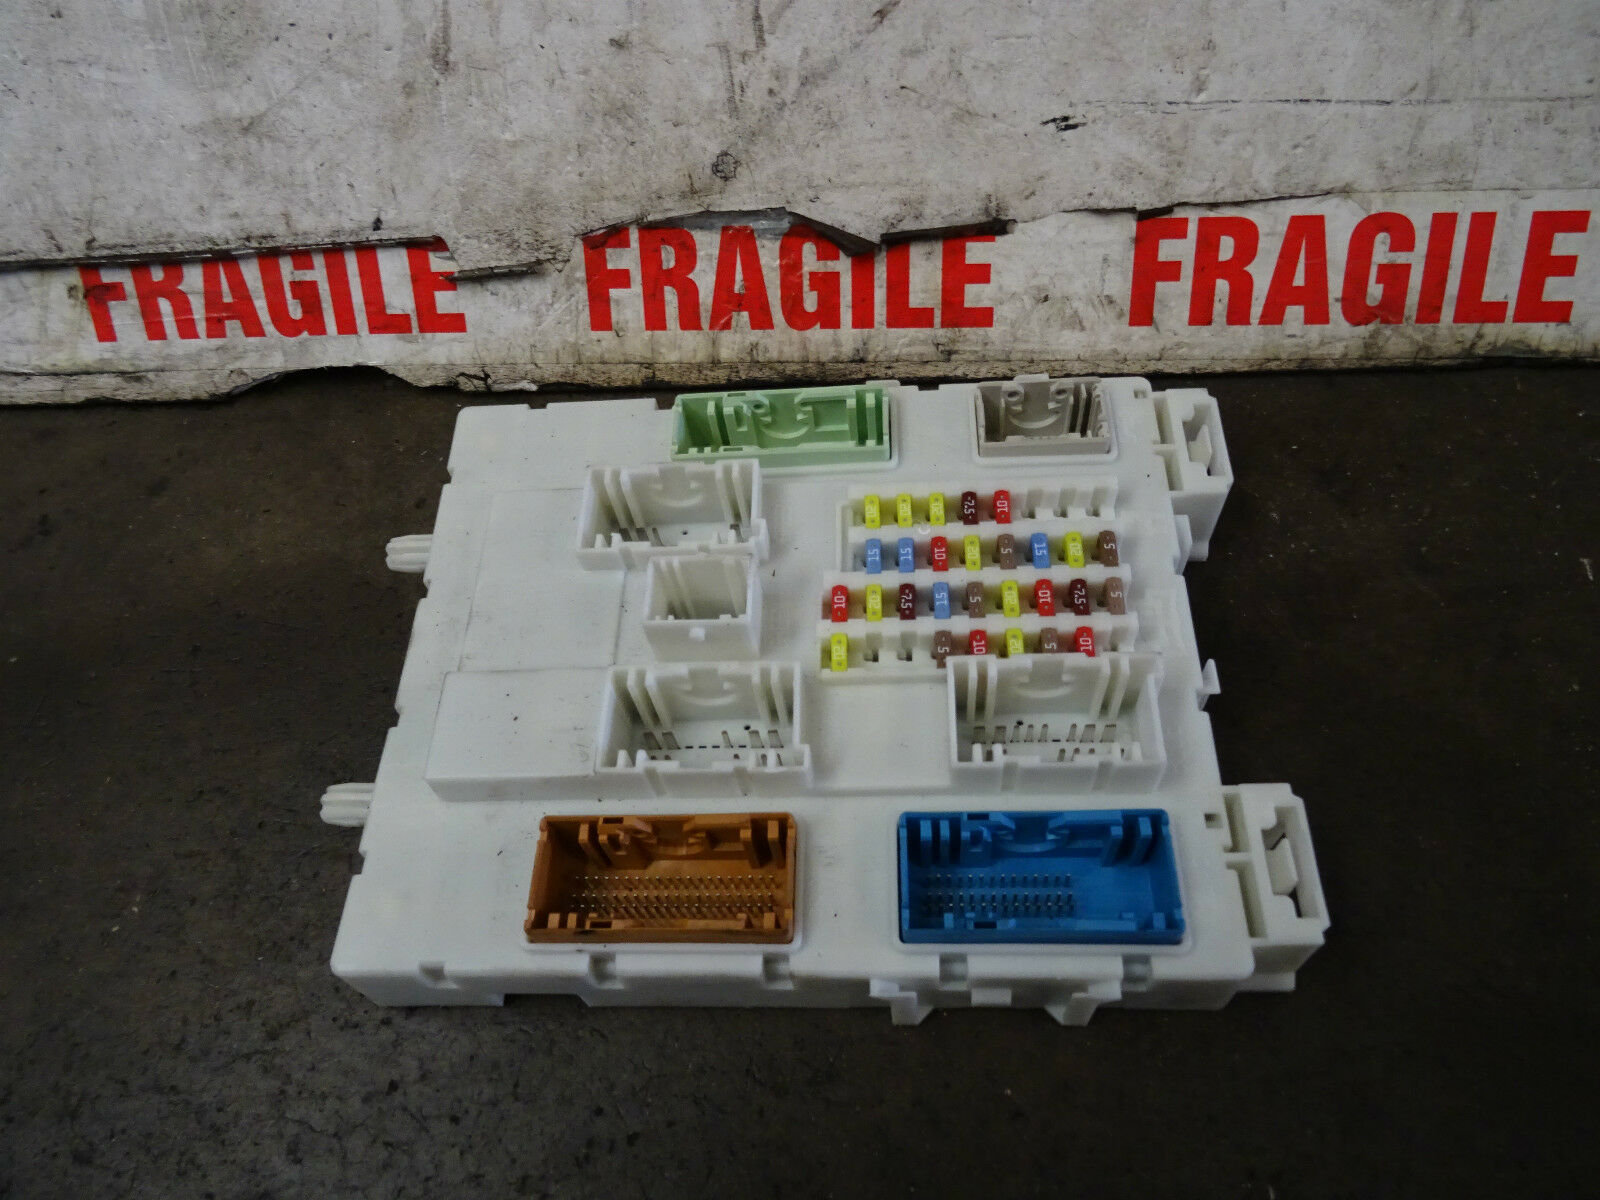 Ford Focus Fuse Box Bv6n 14a073 Ft 2011 14 Match Codes 4000 2012 1 Of 12only 4 Available